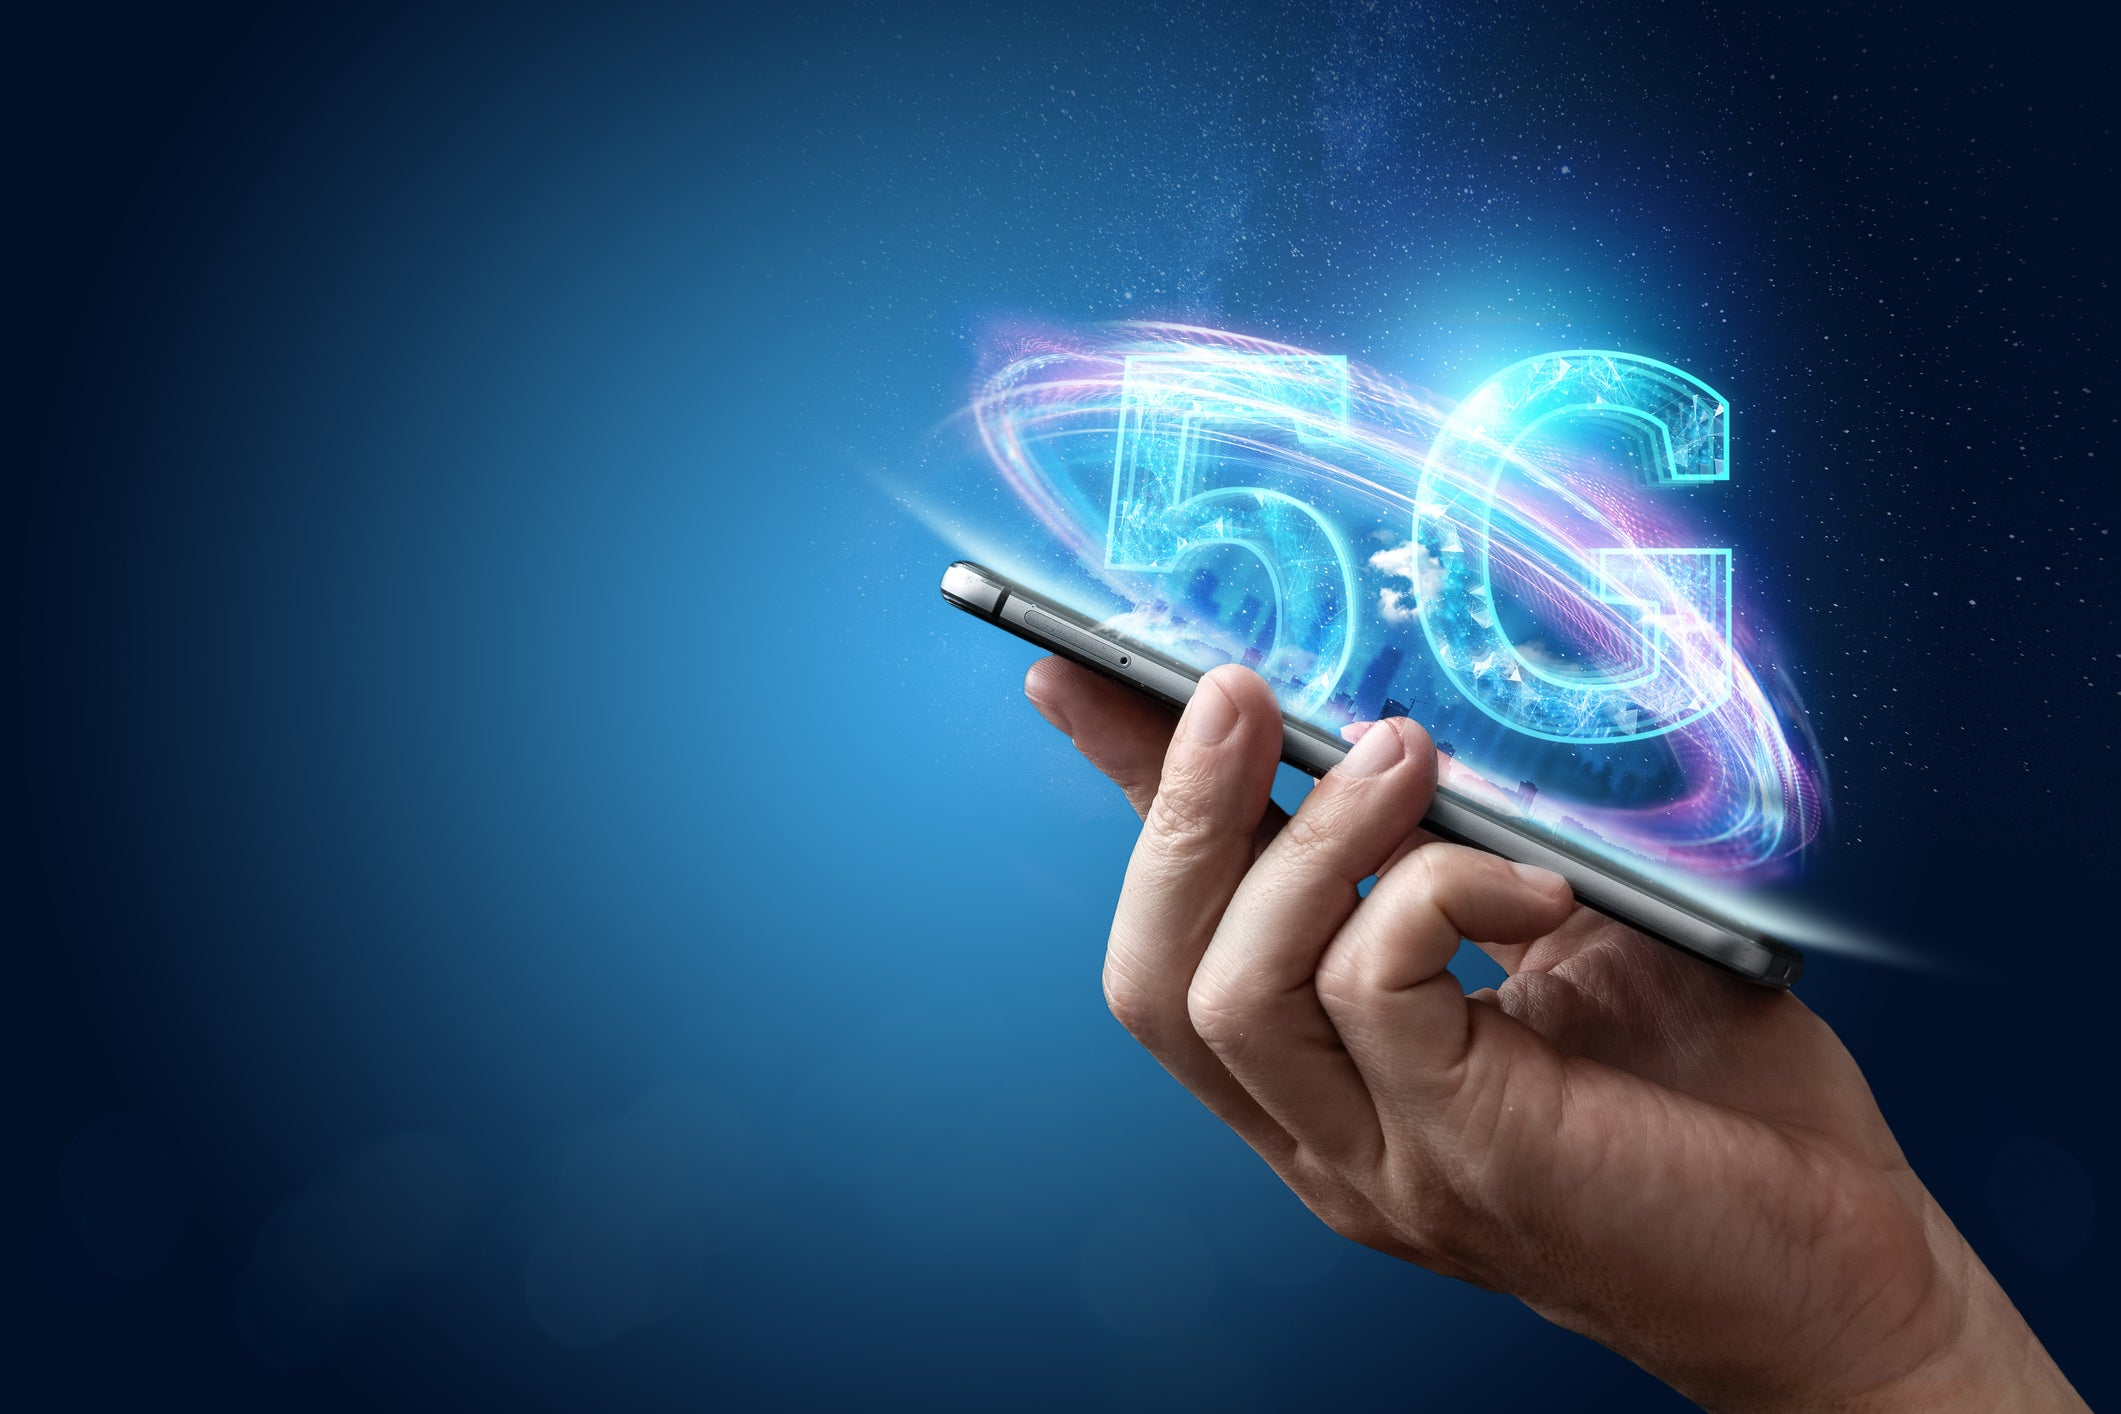 Apple's 5G Empire Could Expand Big Time